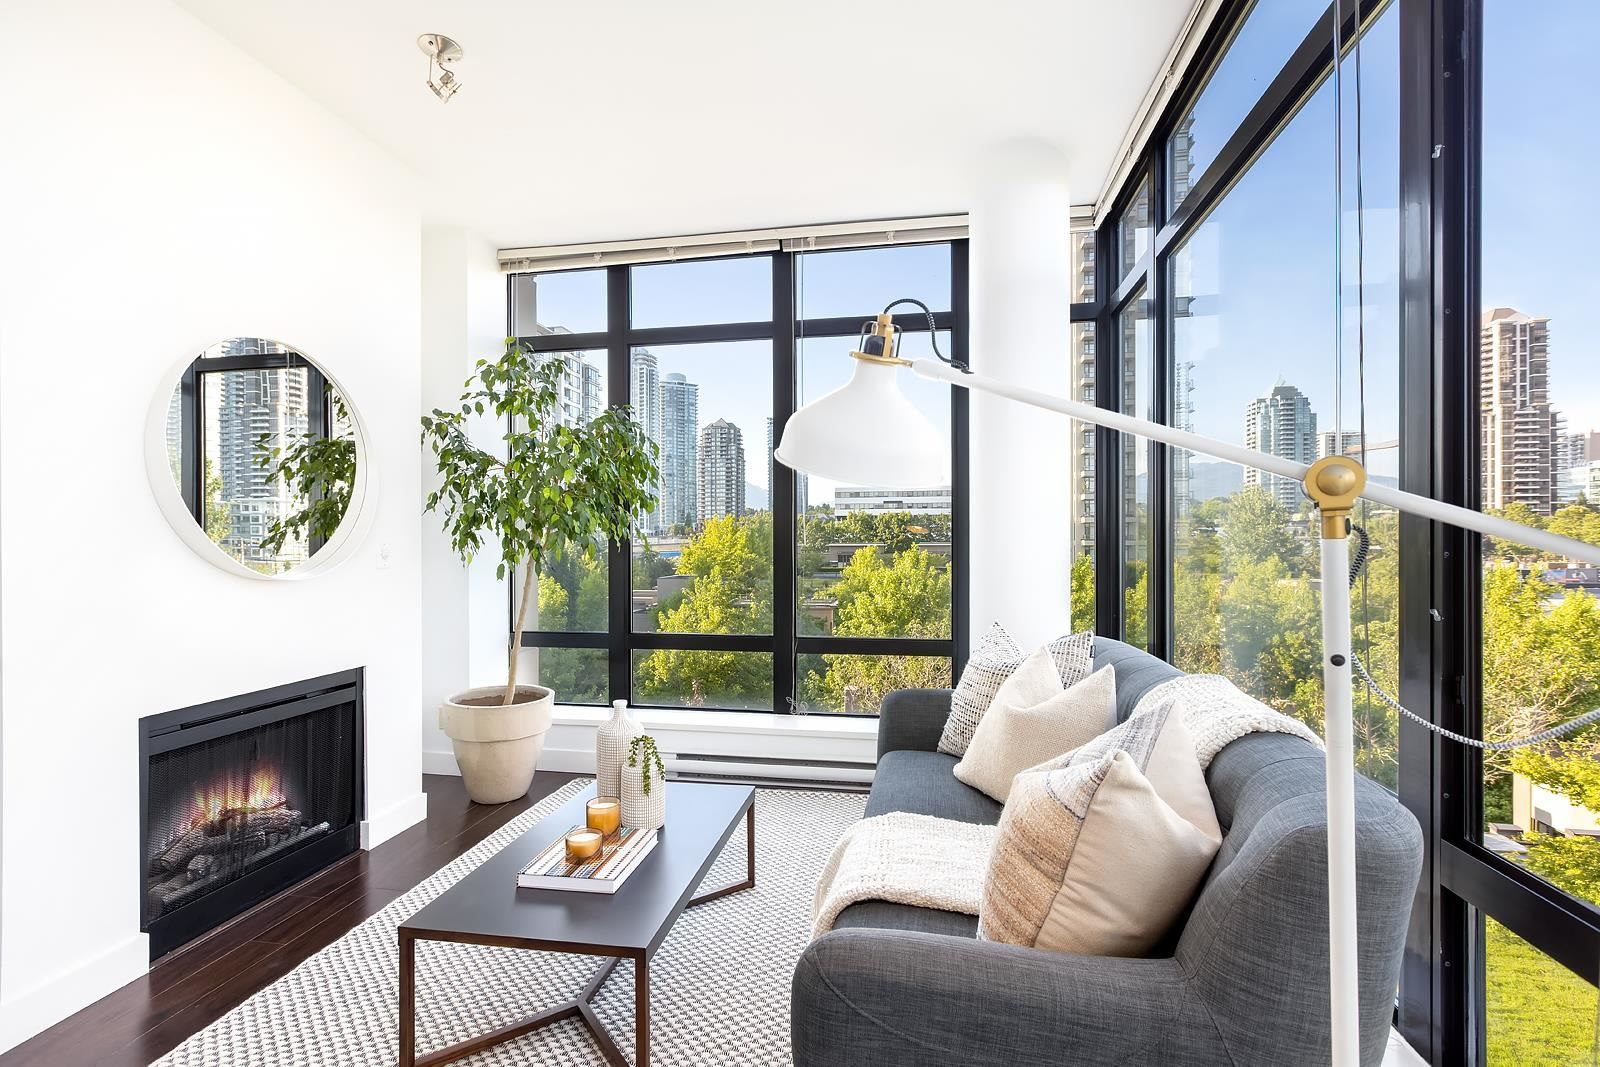 """Photo 4: Photos: 506 2345 MADISON Avenue in Burnaby: Brentwood Park Condo for sale in """"ONE MADISON AVENUE"""" (Burnaby North)  : MLS®# R2601656"""